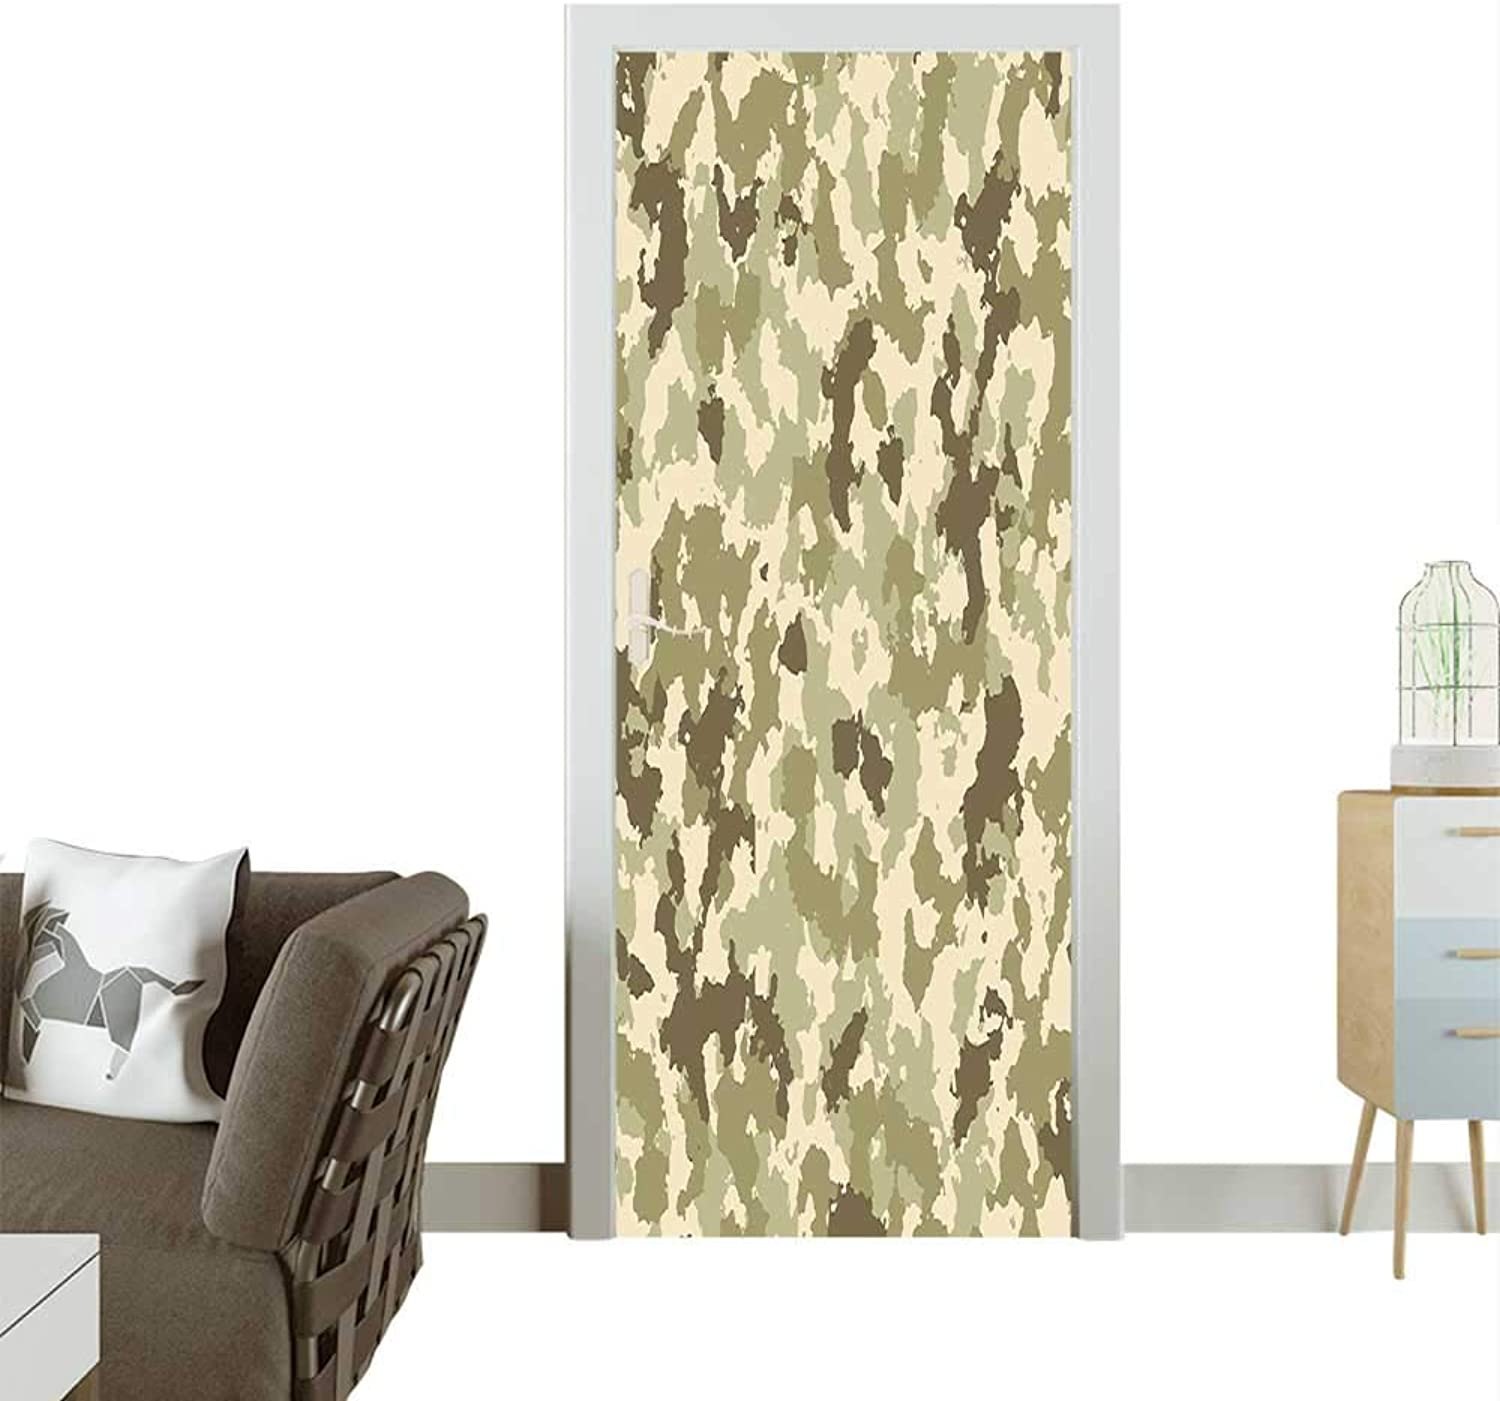 Homesonne Door Decals Camouflage Pattern Classical Jungle Survival Army Green Pale Green Pressure resistantW35.4 x H78.7 INCH